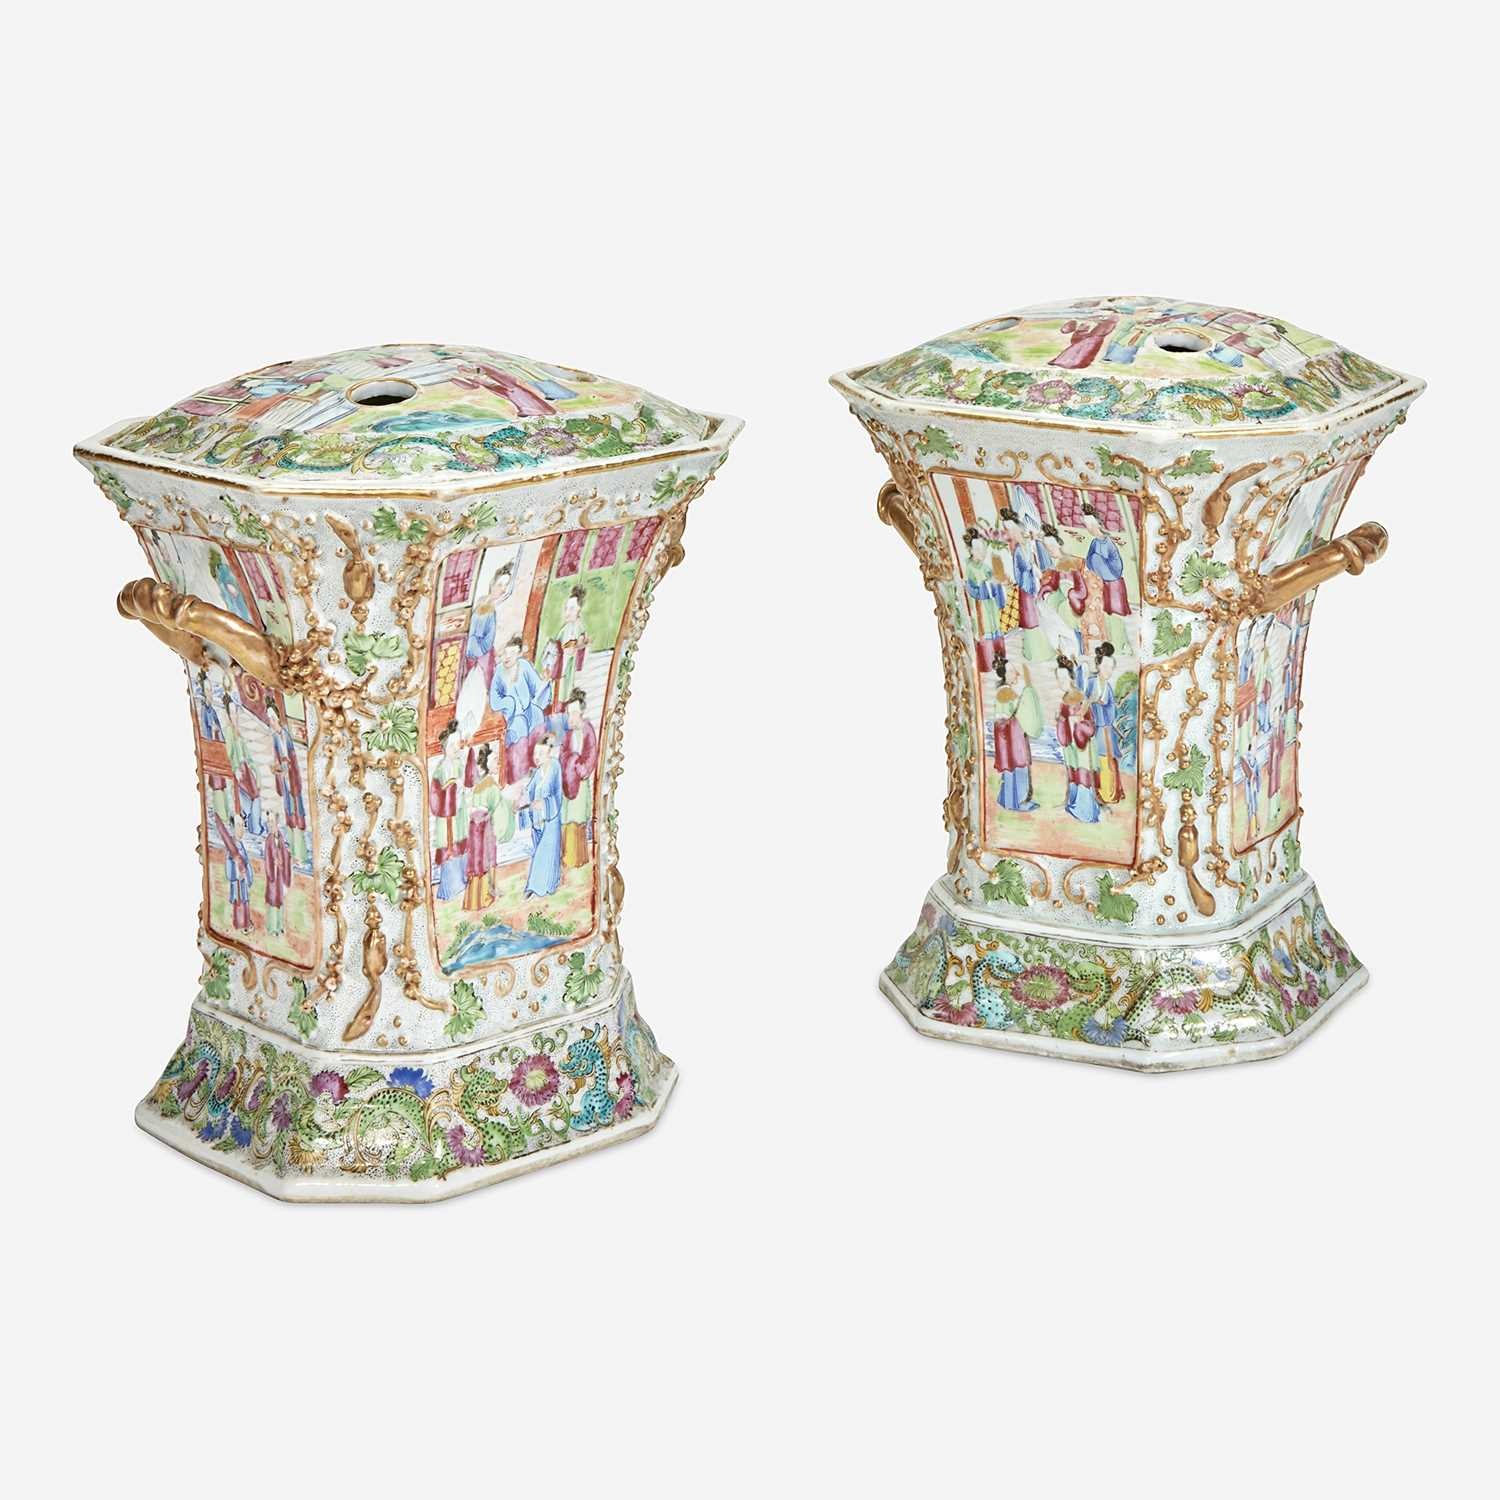 A Pair of Chinese Export Famille Rose Porcelain Covered Bough Pots